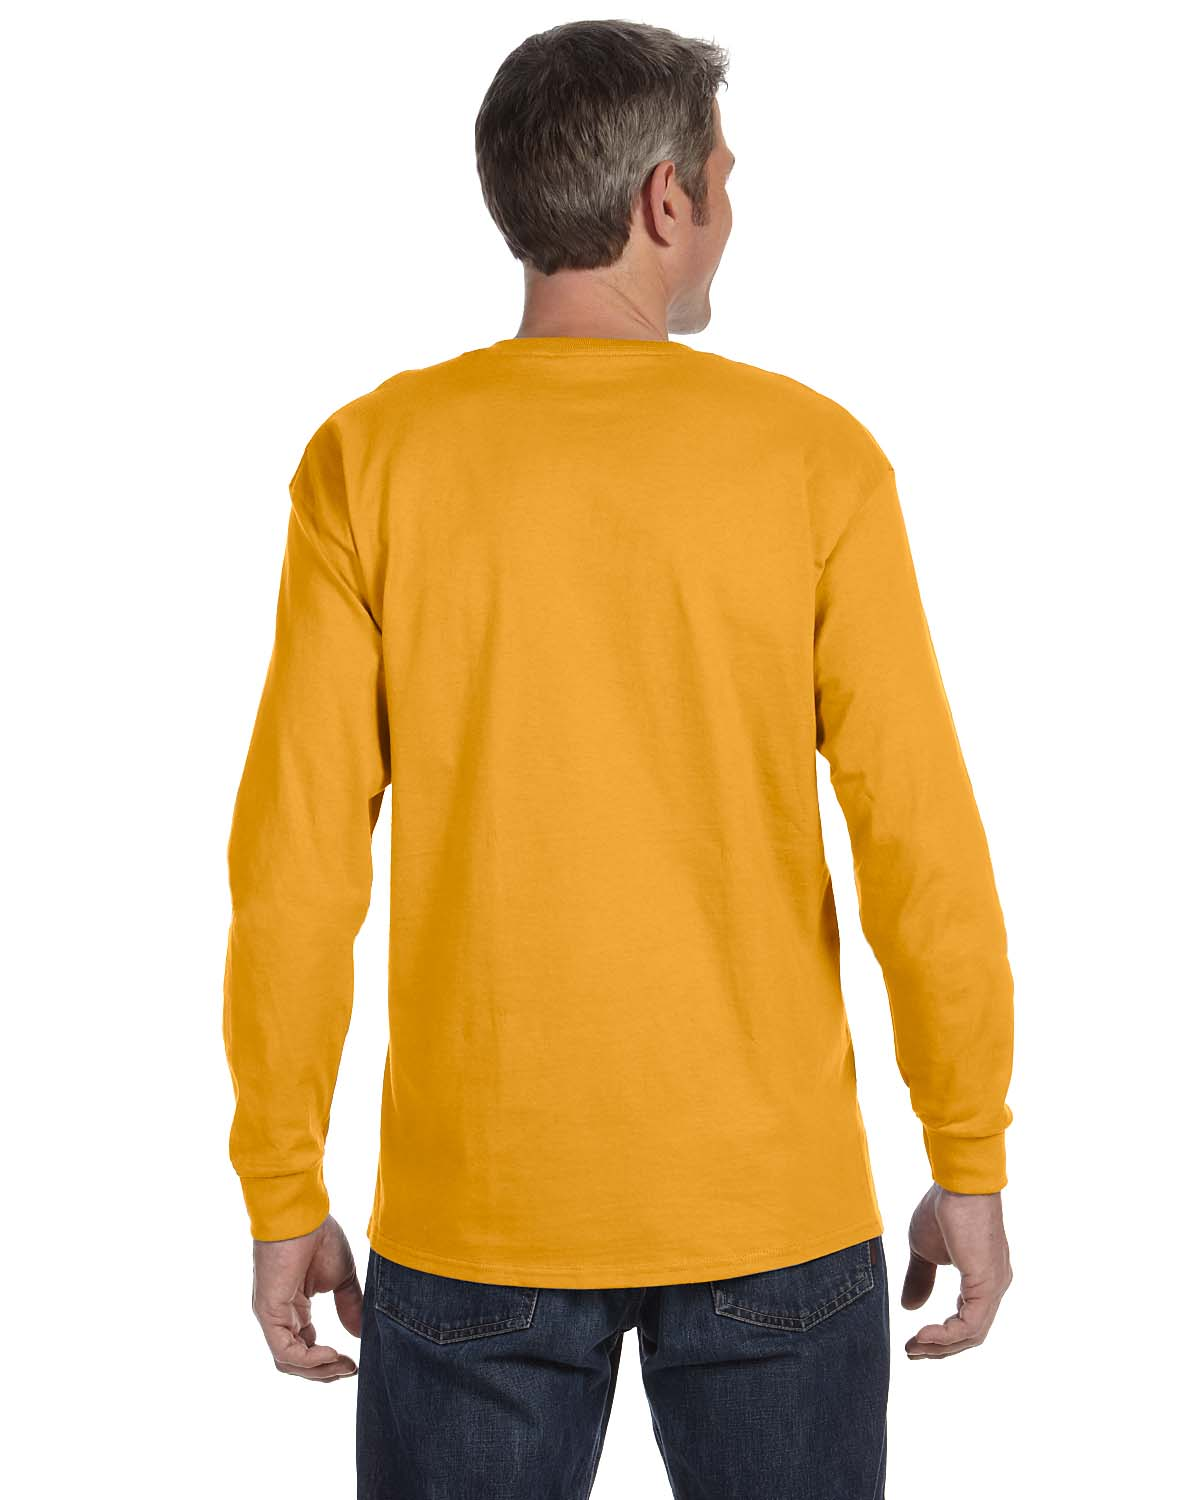 Gildan-Mens-T-Shirt-Long-Sleeve-Heavy-Cotton-5-3-oz-S-XL-R-G540-5400 thumbnail 23